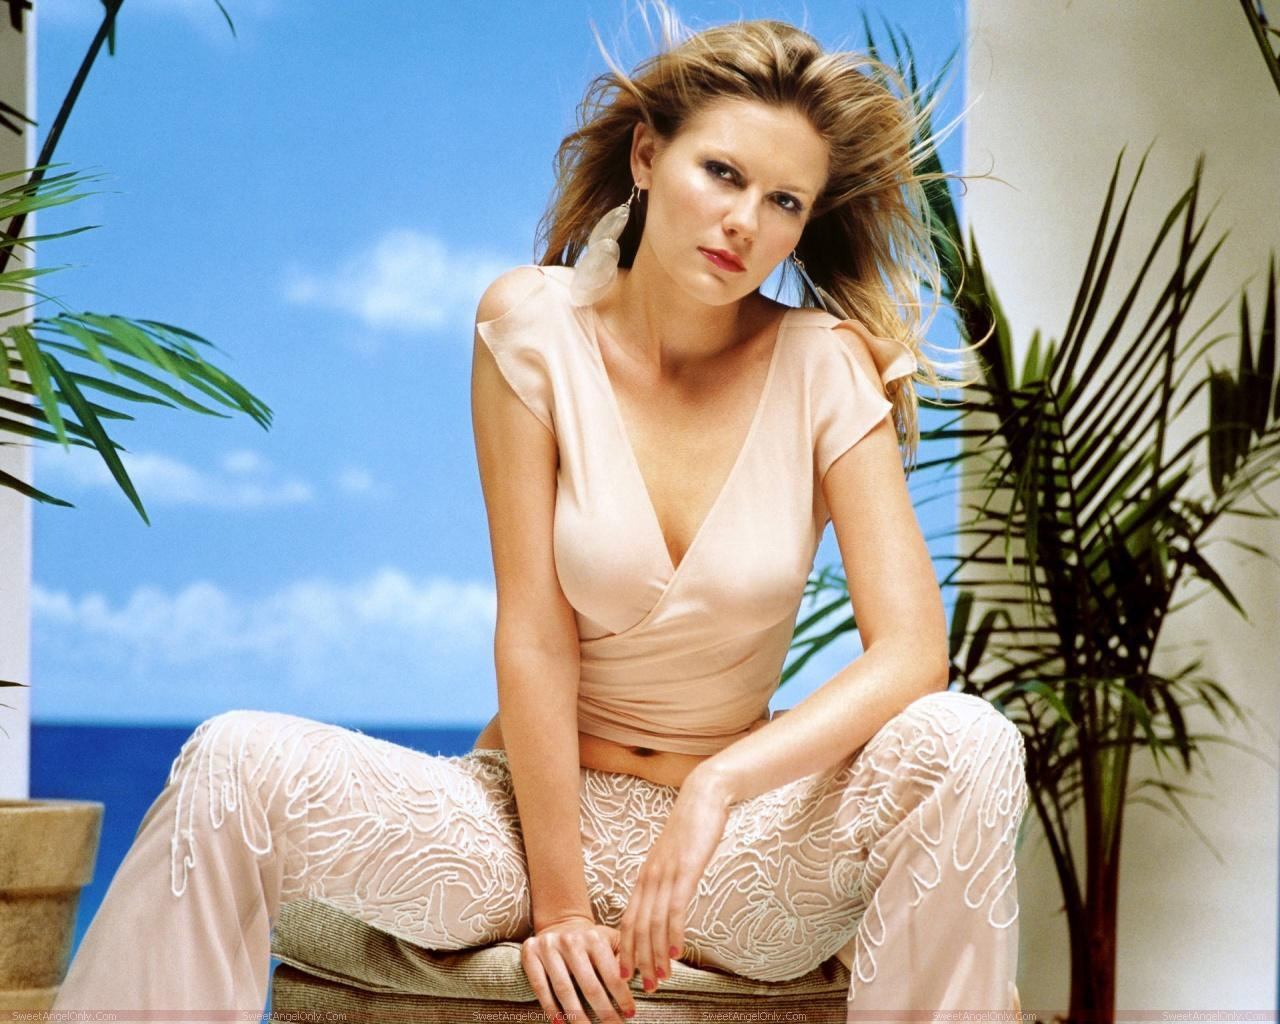 http://2.bp.blogspot.com/-d7EJ3ZAgt34/TYjCRb6WpGI/AAAAAAAAFE8/OxkdKm7ns_U/s1600/kirsten_dunst_hot_photo_wallpaper_08.jpg